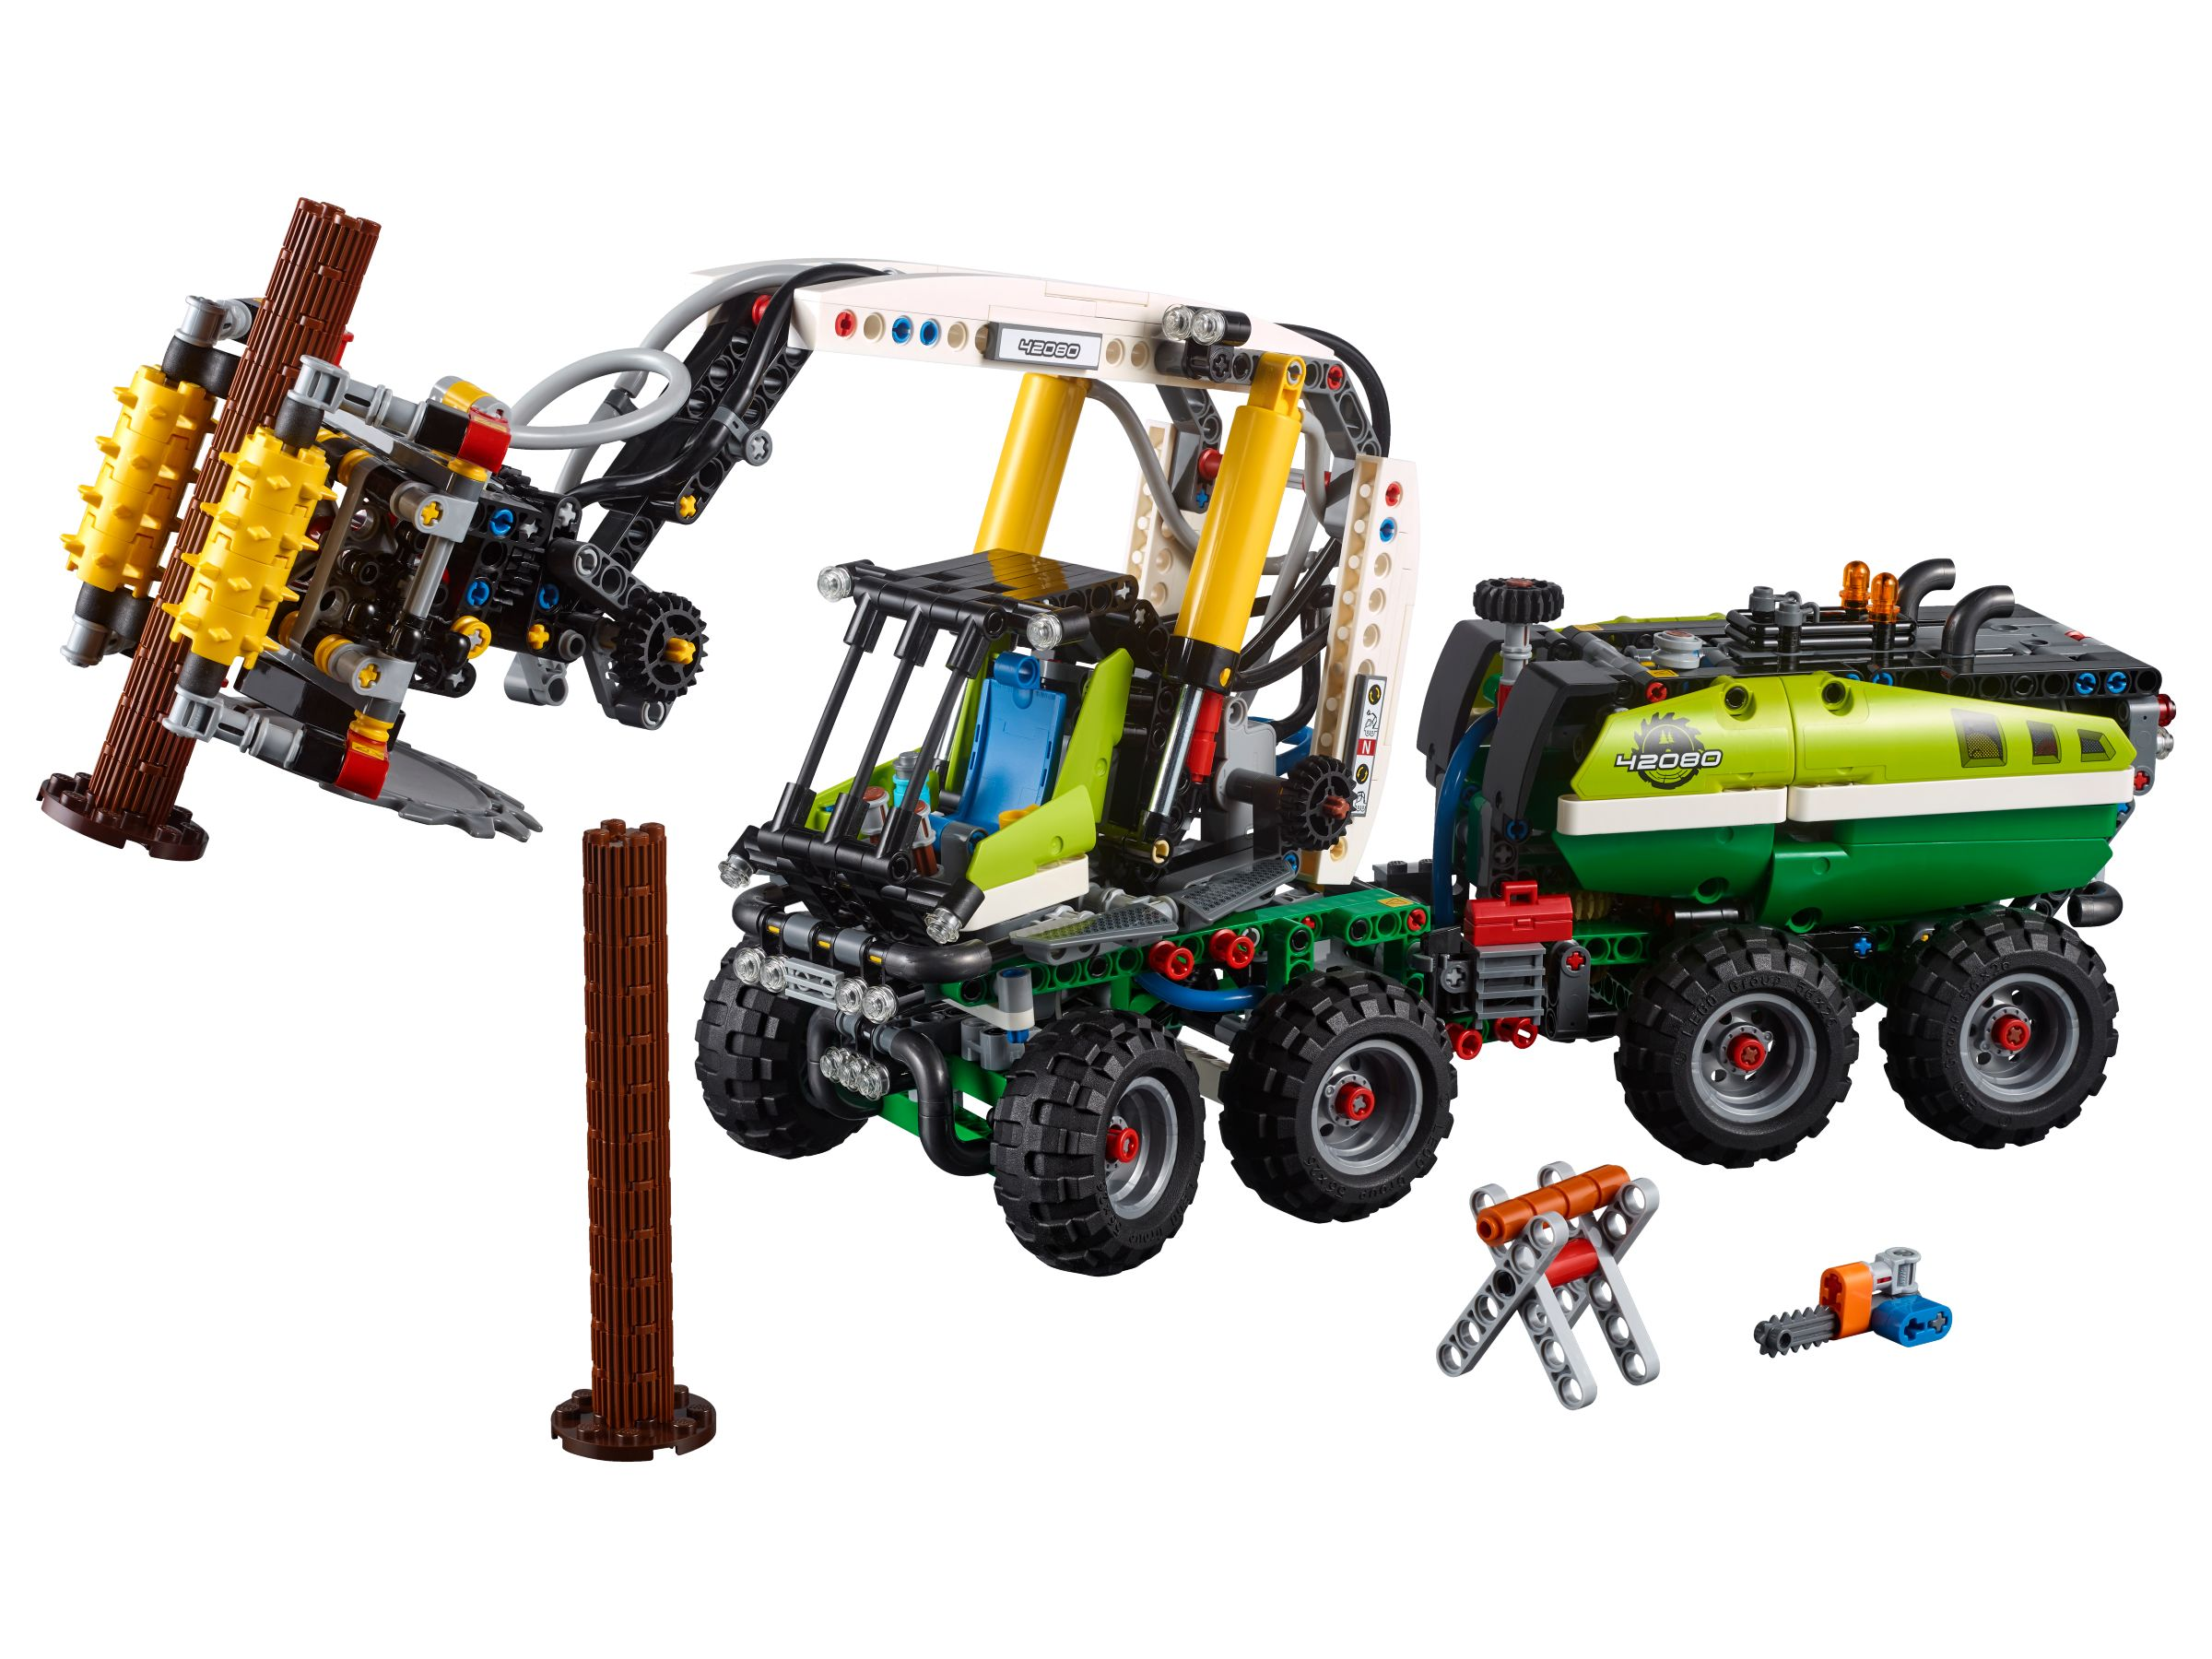 lego 42080 harvester forstmaschine technic 2018 ab 97 97 25 gespart forest harvester. Black Bedroom Furniture Sets. Home Design Ideas